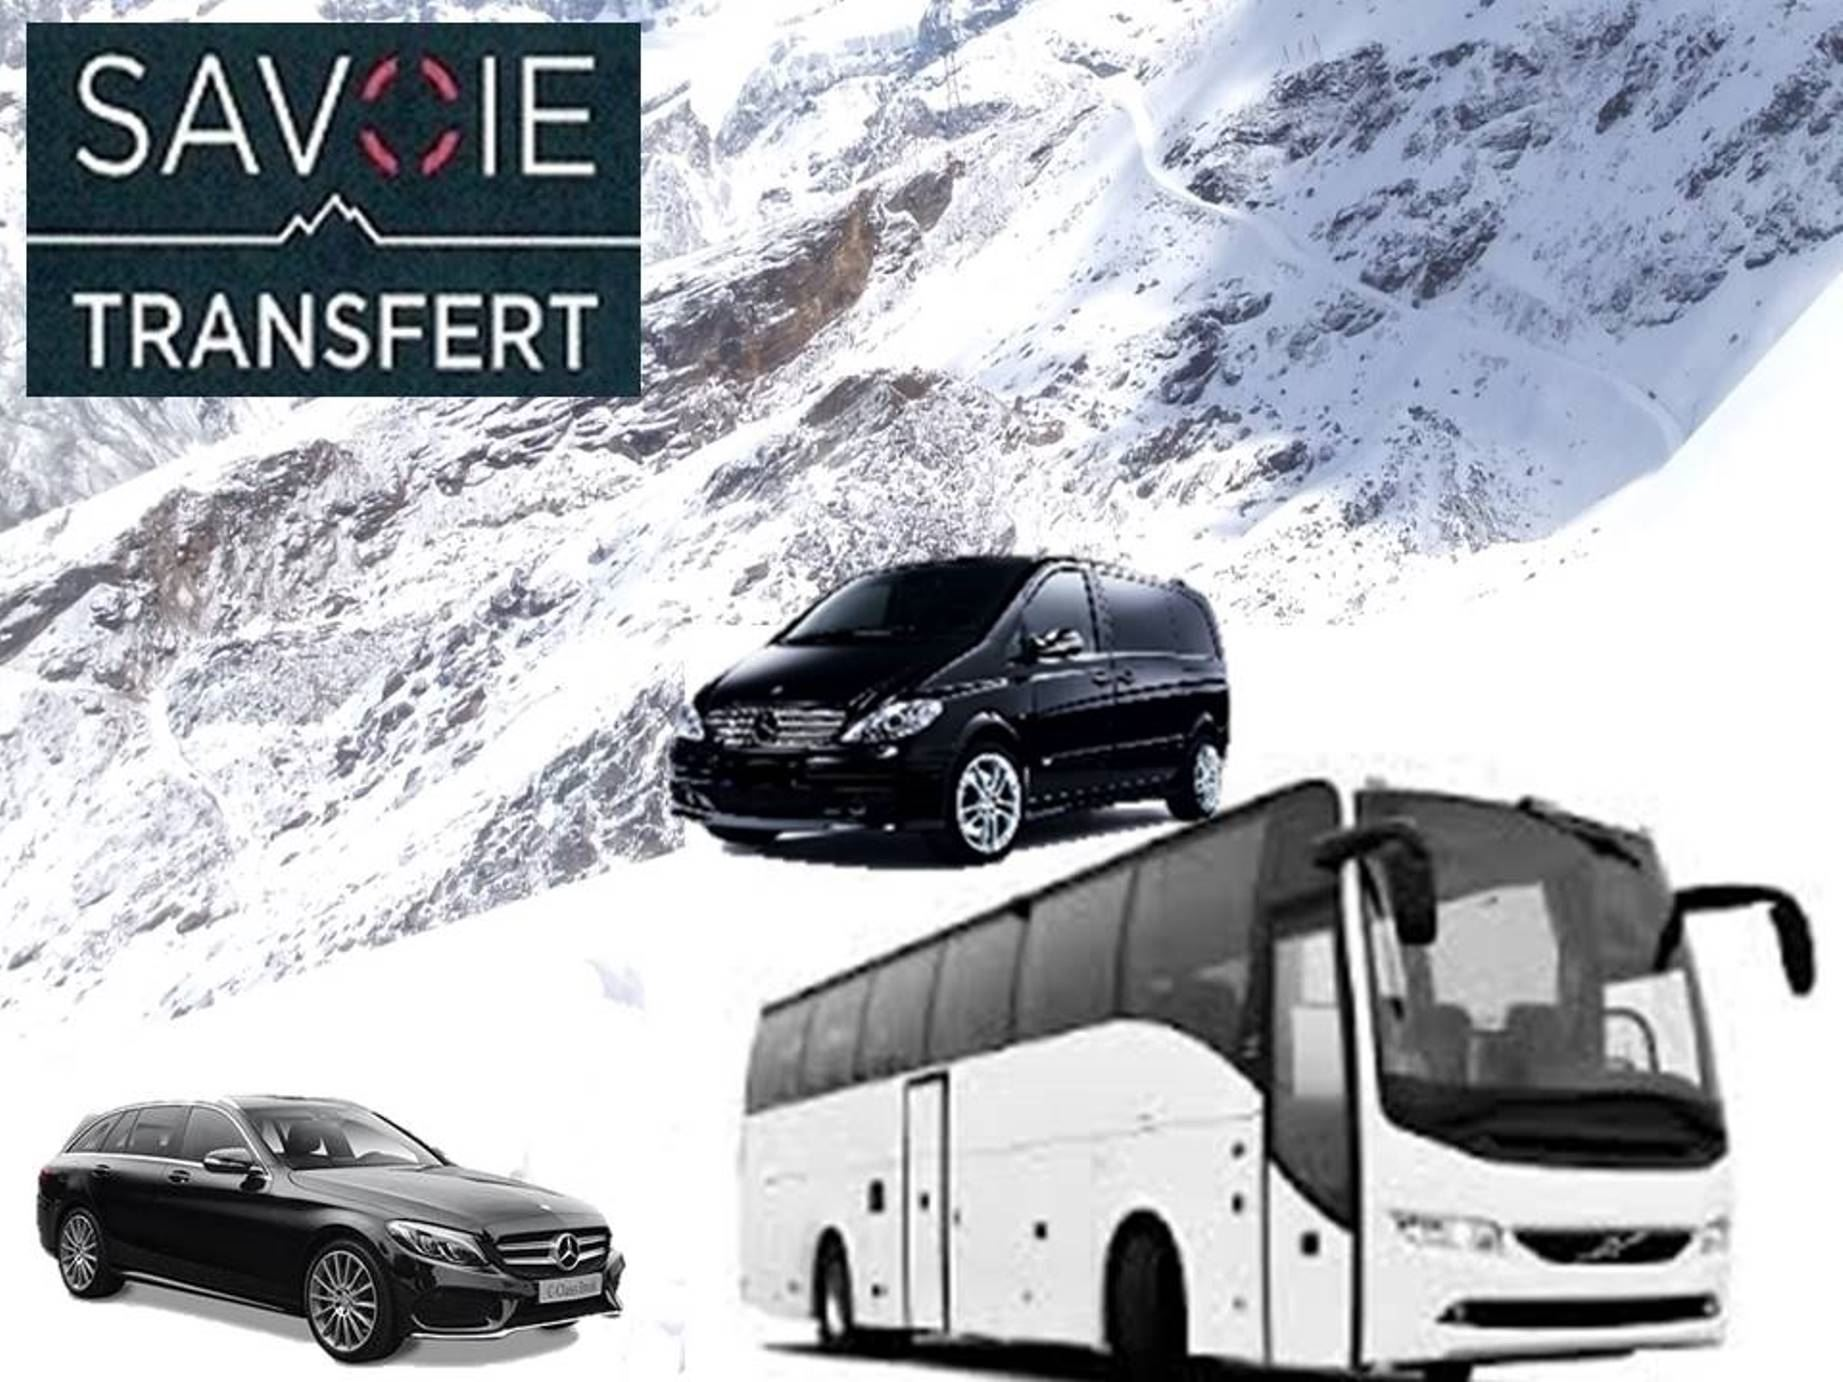 PRIVATE TRANSFER from GRENOBLE AIRPORT ROUND TRIP with VAL THORENS TRANSFERT